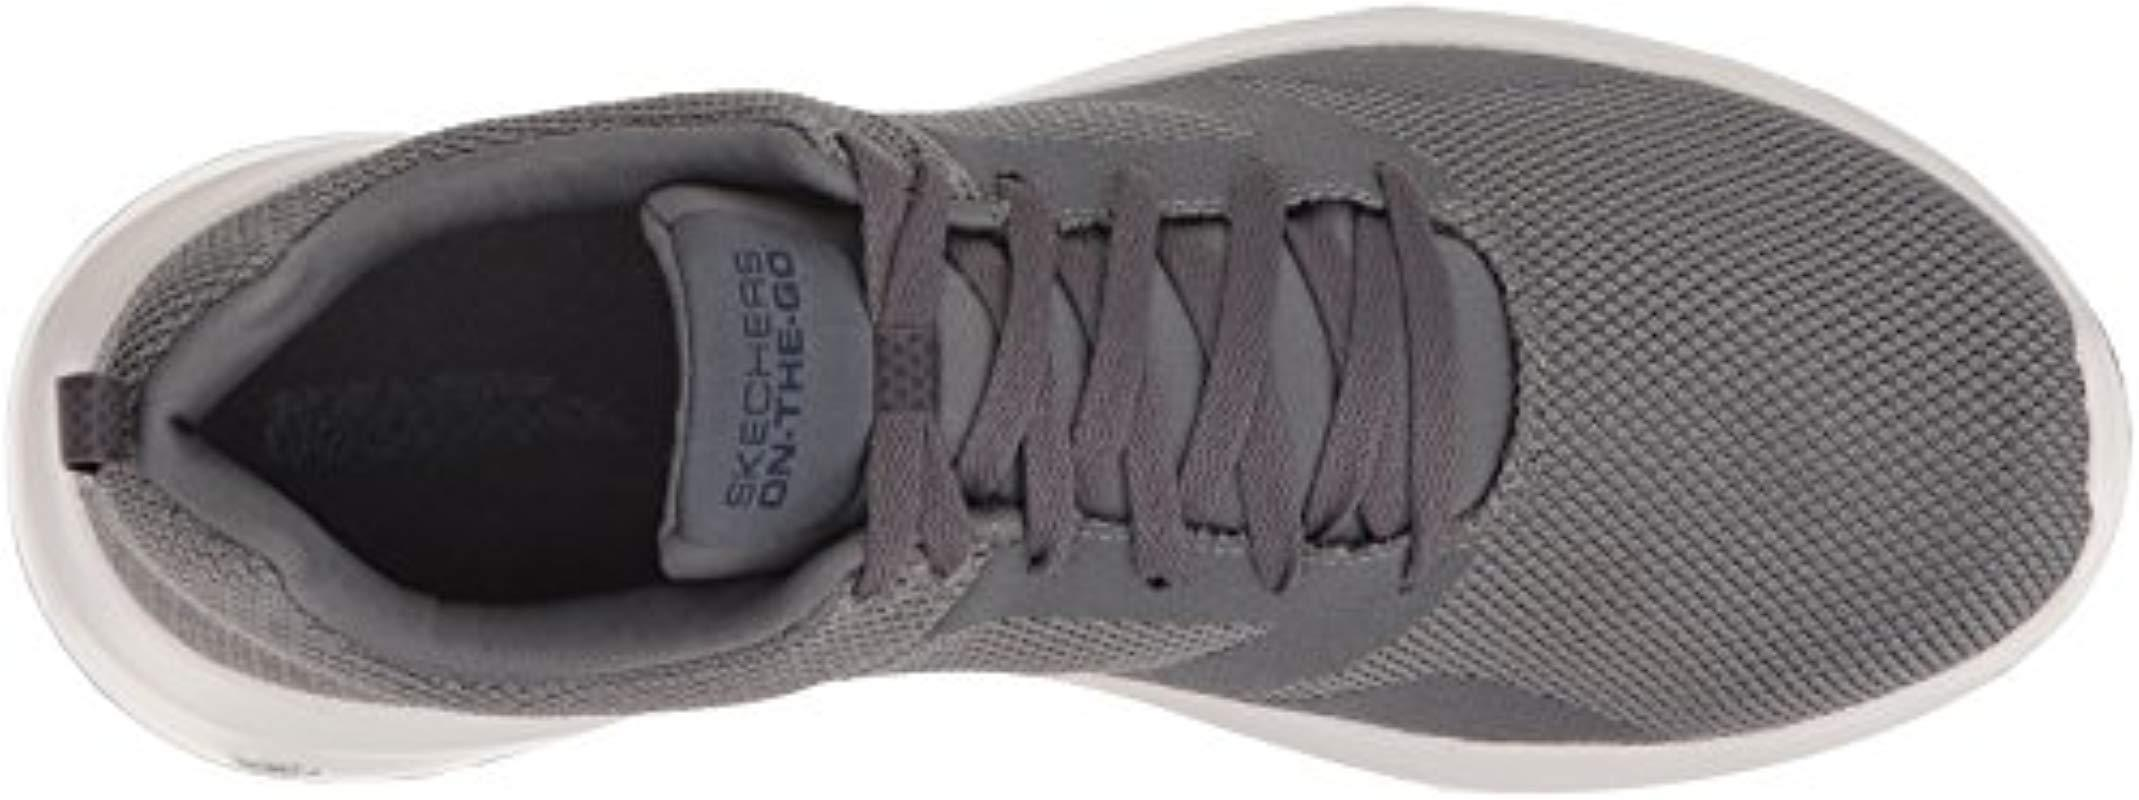 Skechers Synthetic 55330/nvgy On The Go City 4.0 Shoes Navy/grey in Charcoal/Navy (Grey) for Men